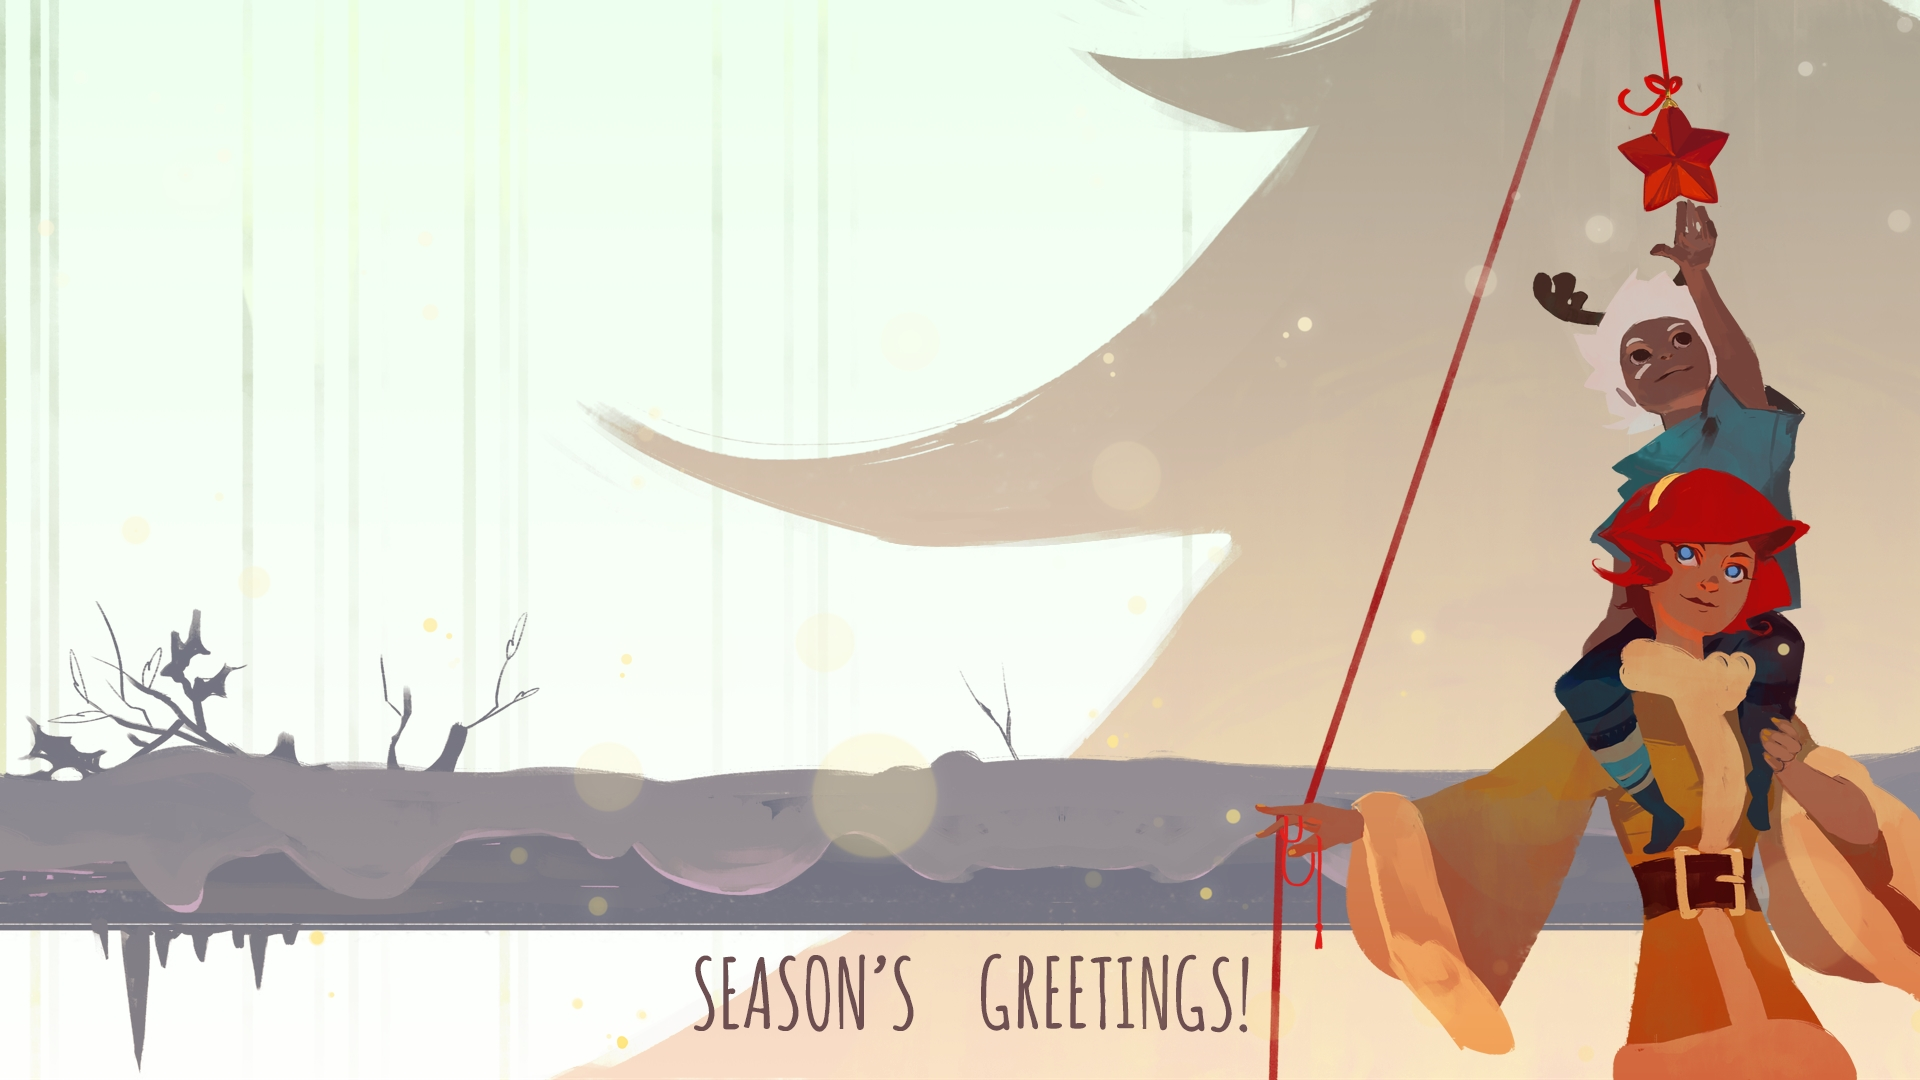 Happy Holidays from Supergiant! | undefined